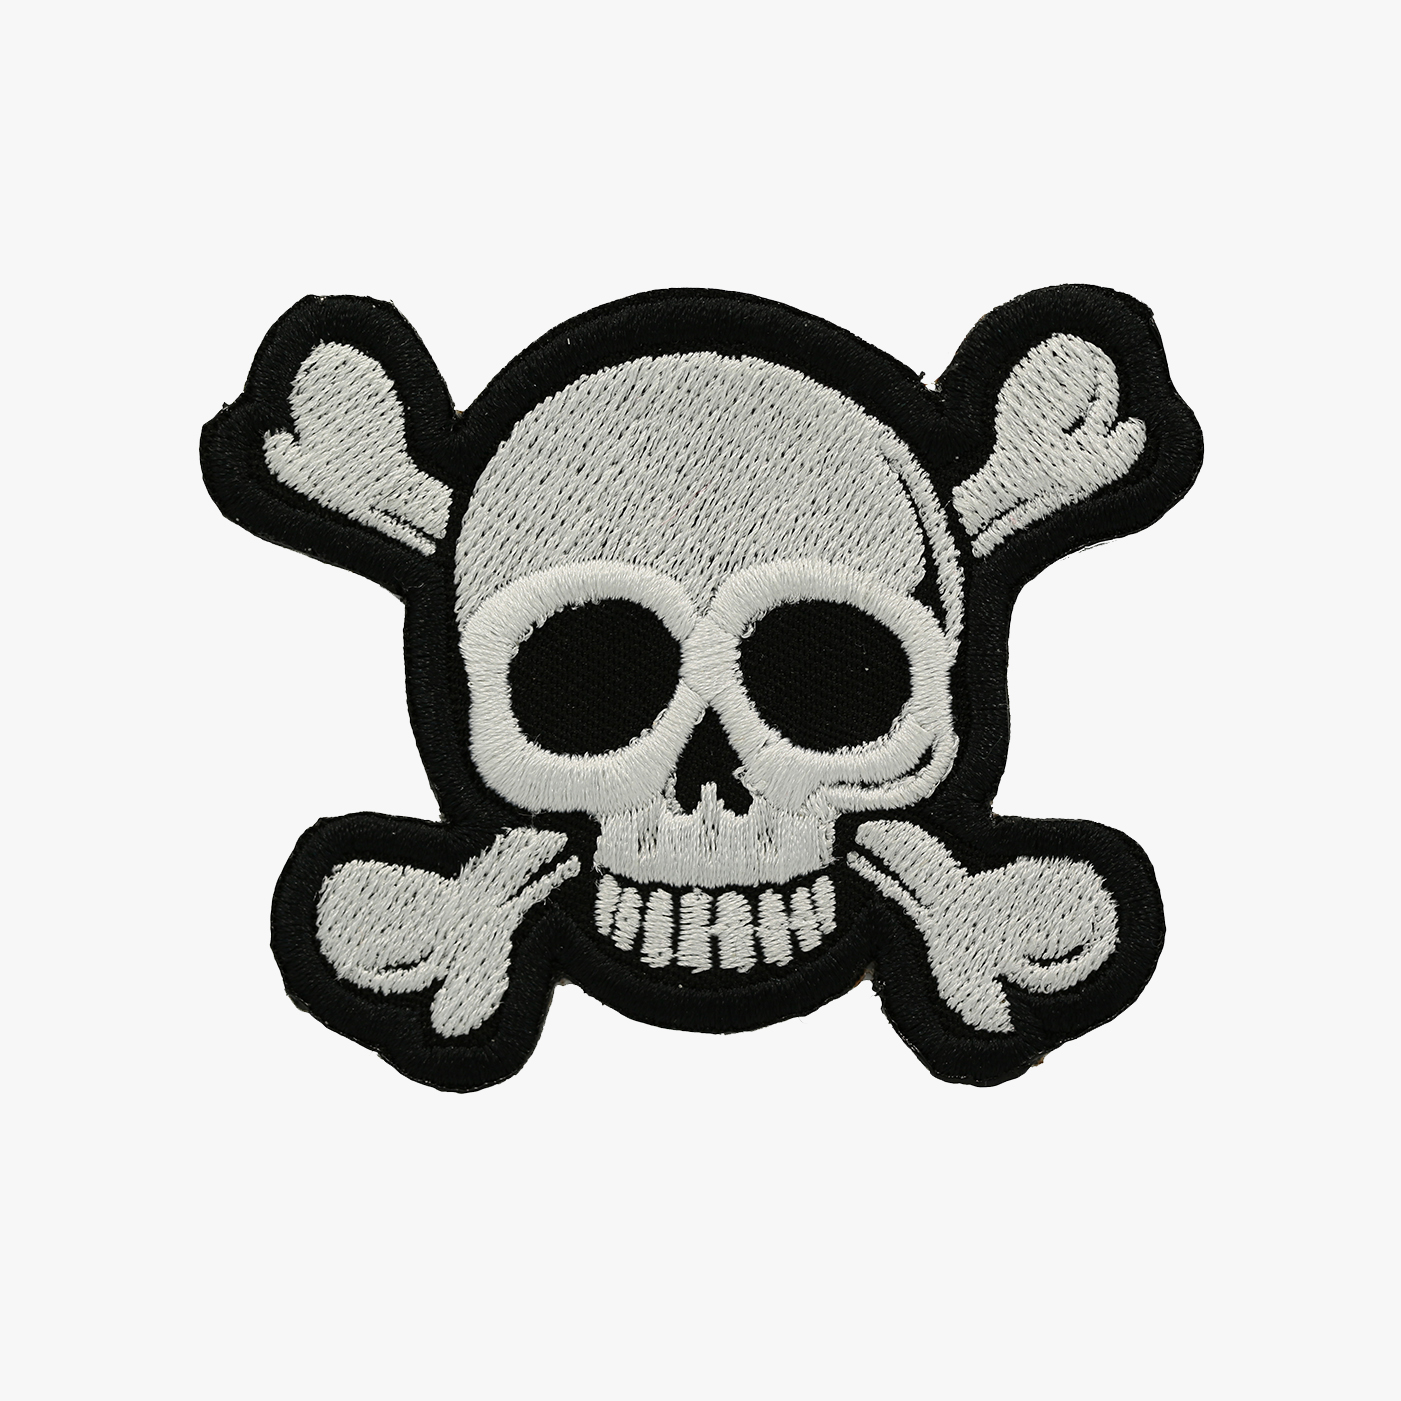 CROSS BONE SKULL EMBROIDERY BIKER PATCH